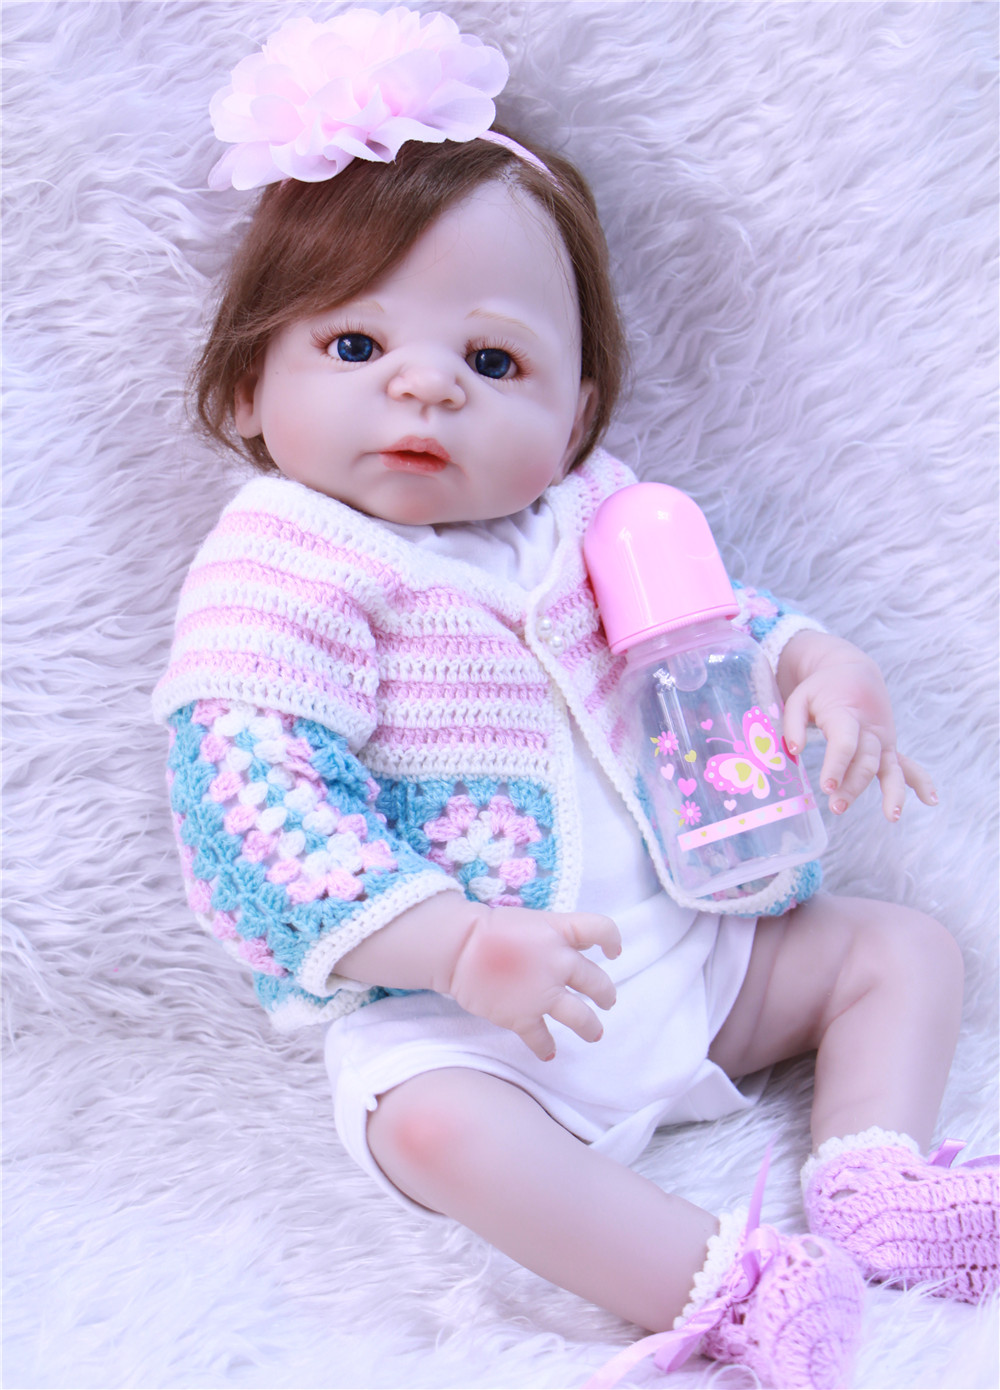 23 reborn girl doll full body silicone reborn baby can enter water with pacifier bottle bebe alive reborn menina bonecas23 reborn girl doll full body silicone reborn baby can enter water with pacifier bottle bebe alive reborn menina bonecas